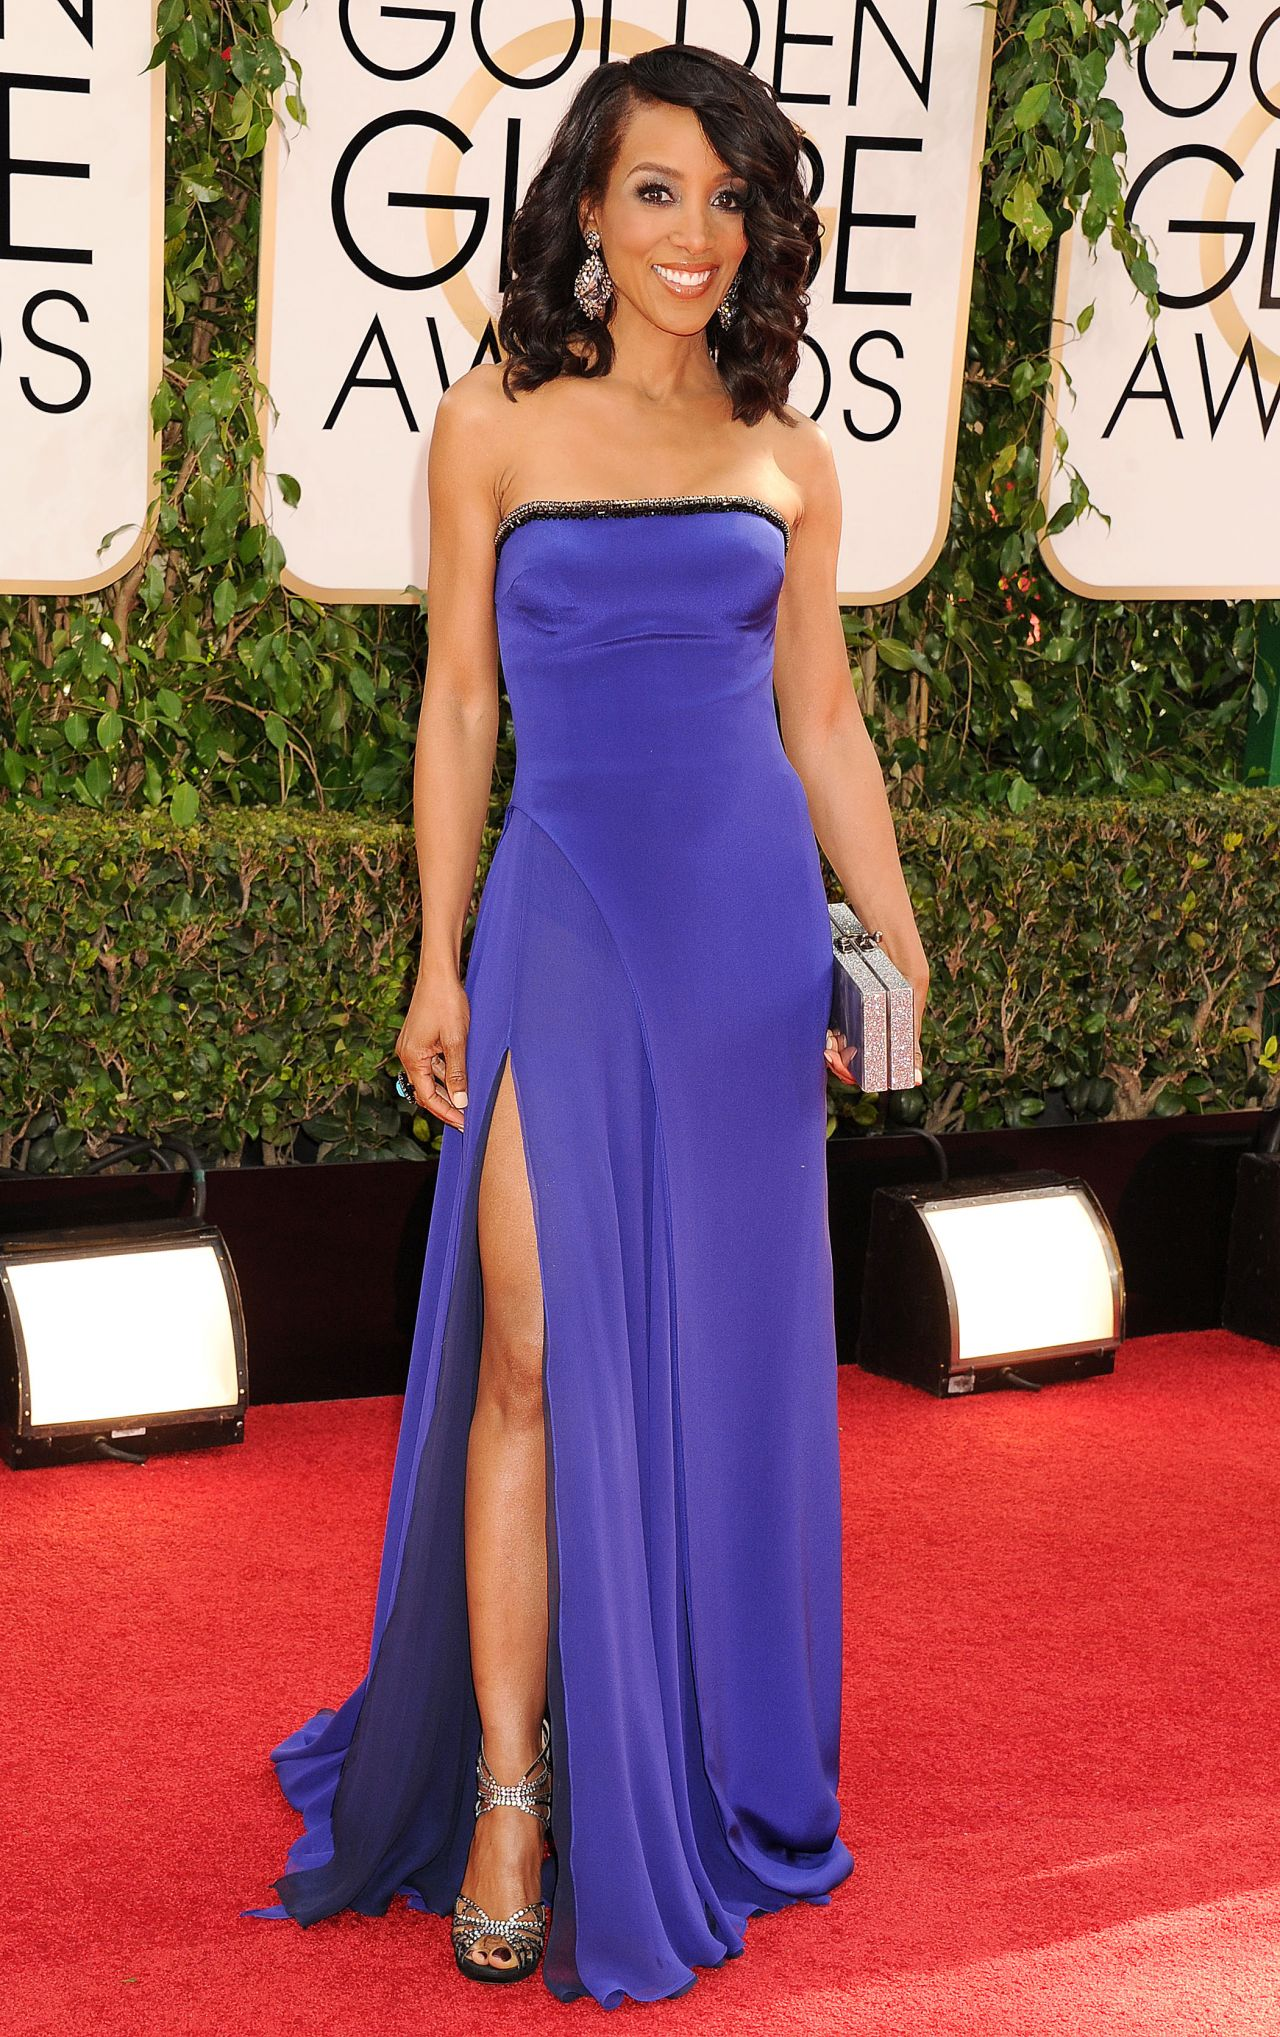 Shaun Robinson at Golden Globe Awards 2014